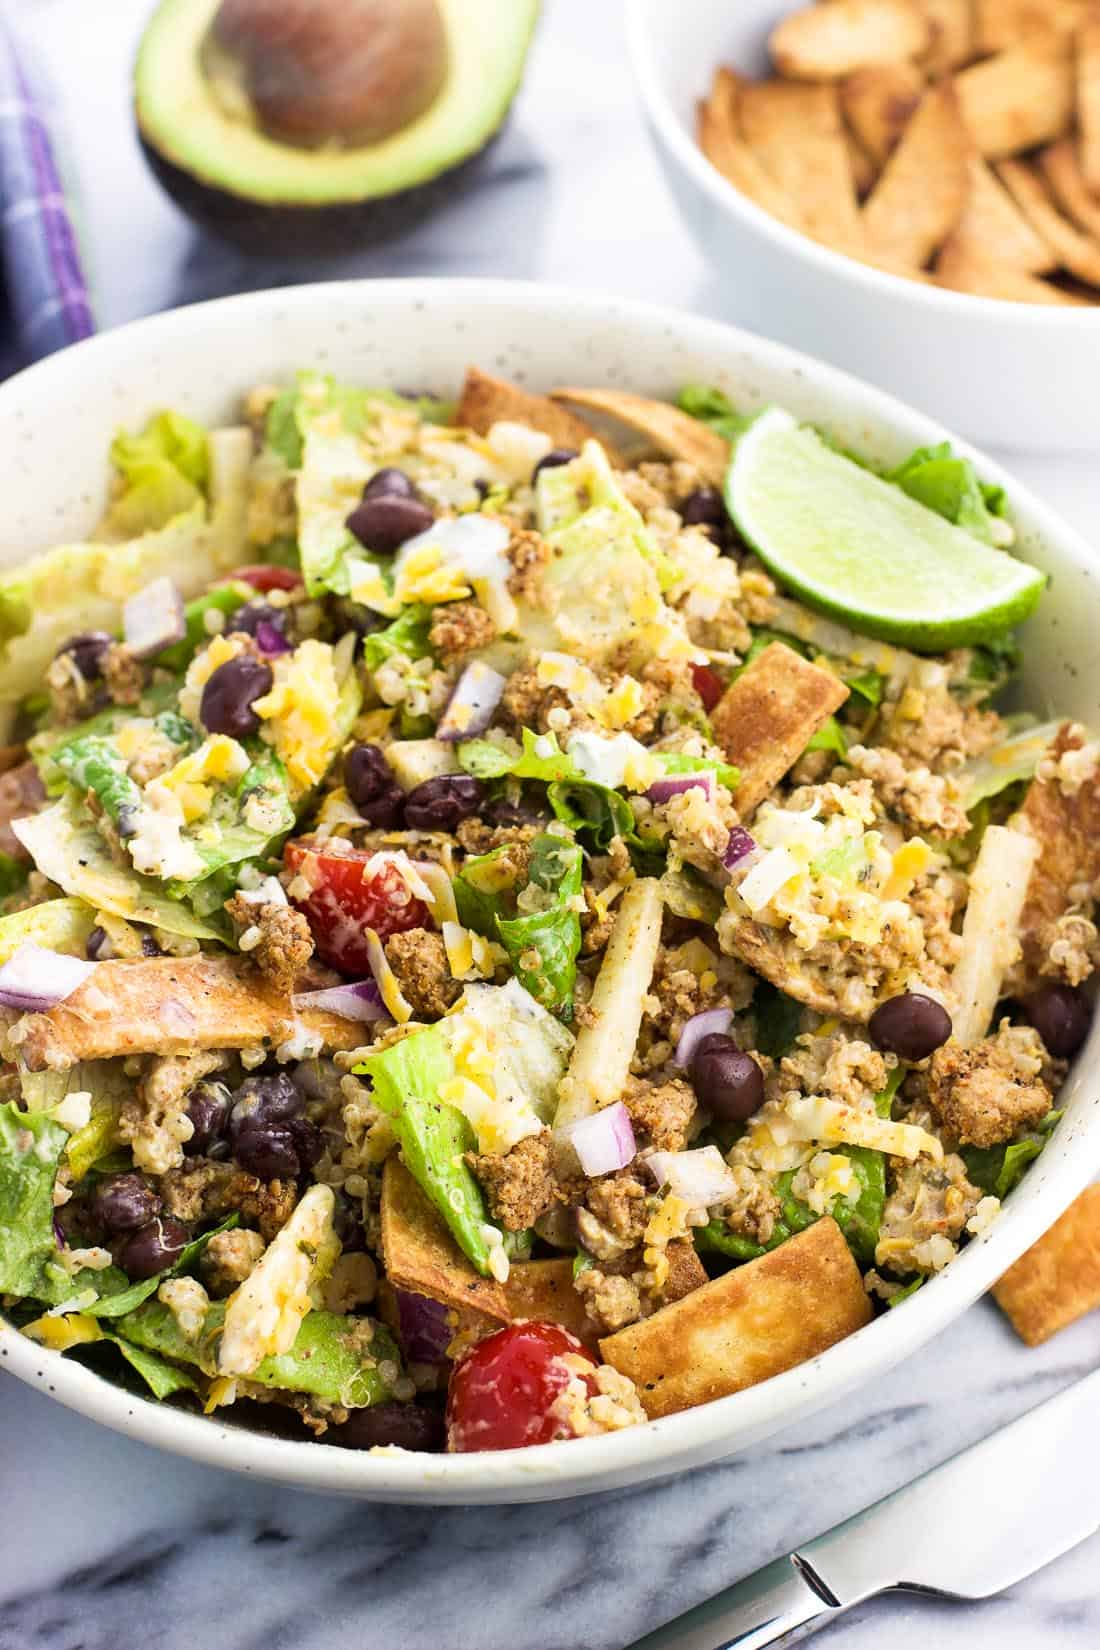 All of the turkey taco salad ingredients mixed together in a bowl for serving